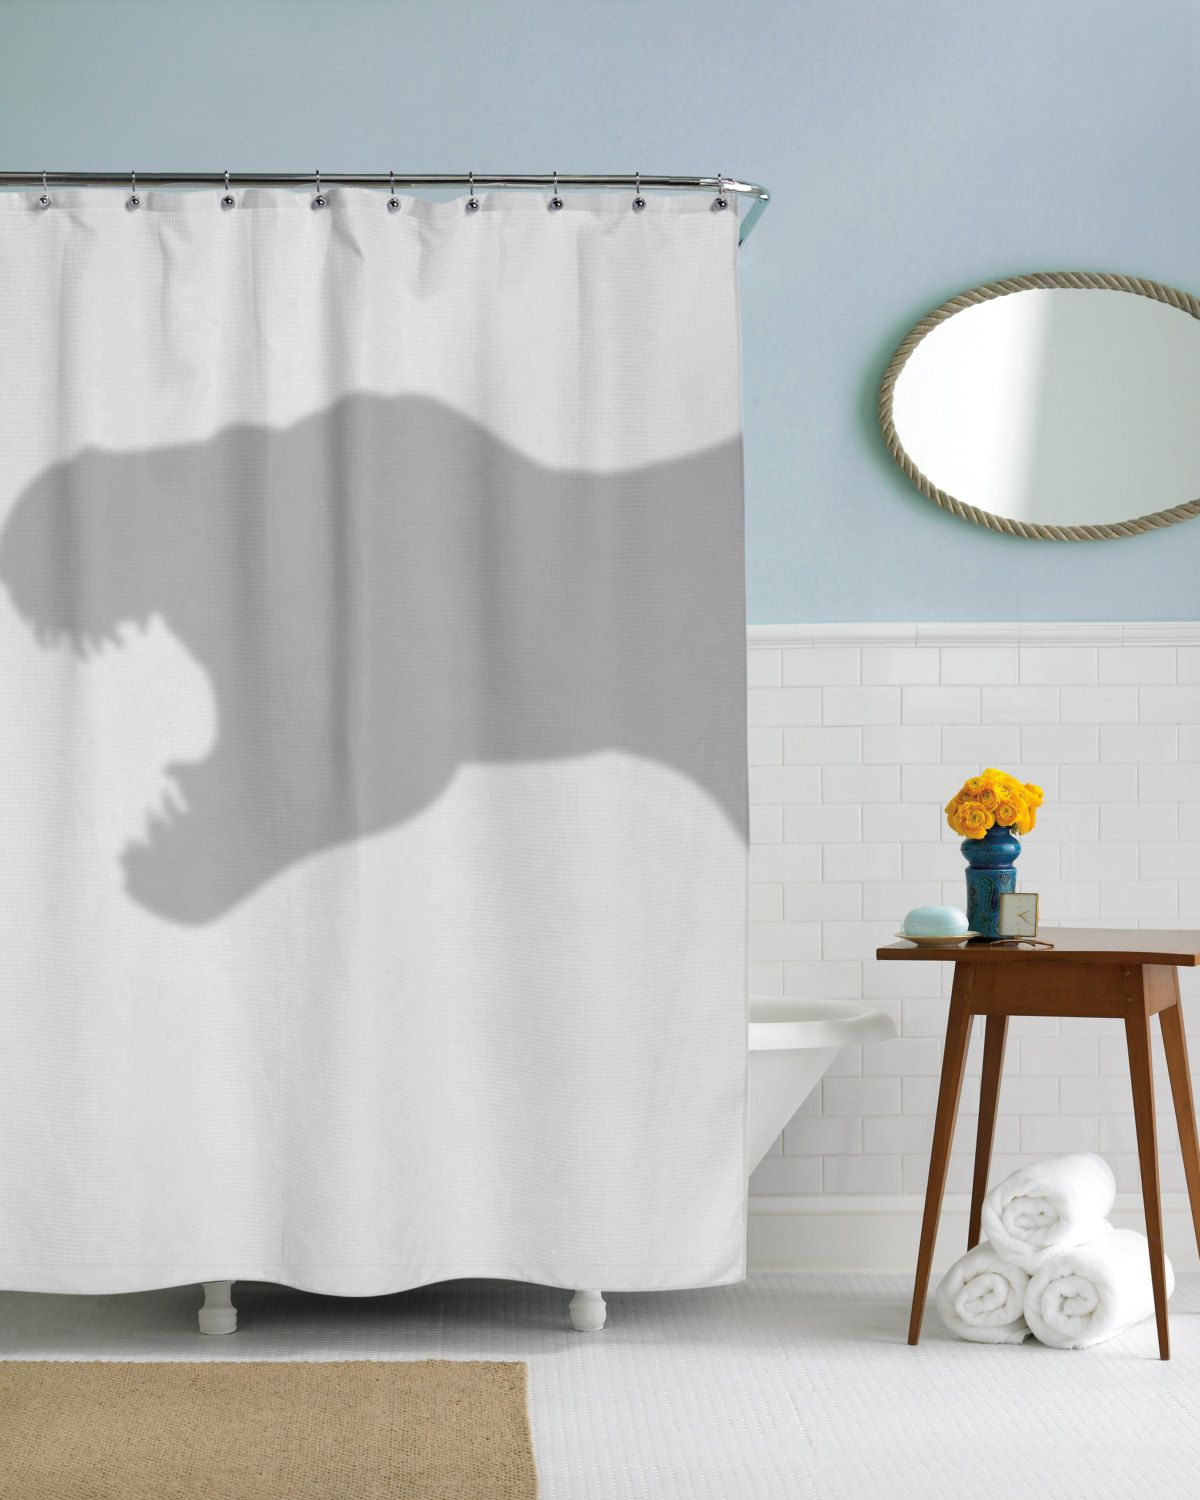 T-Rex Shower Curtain dino coolest bathroom you will ever see ...